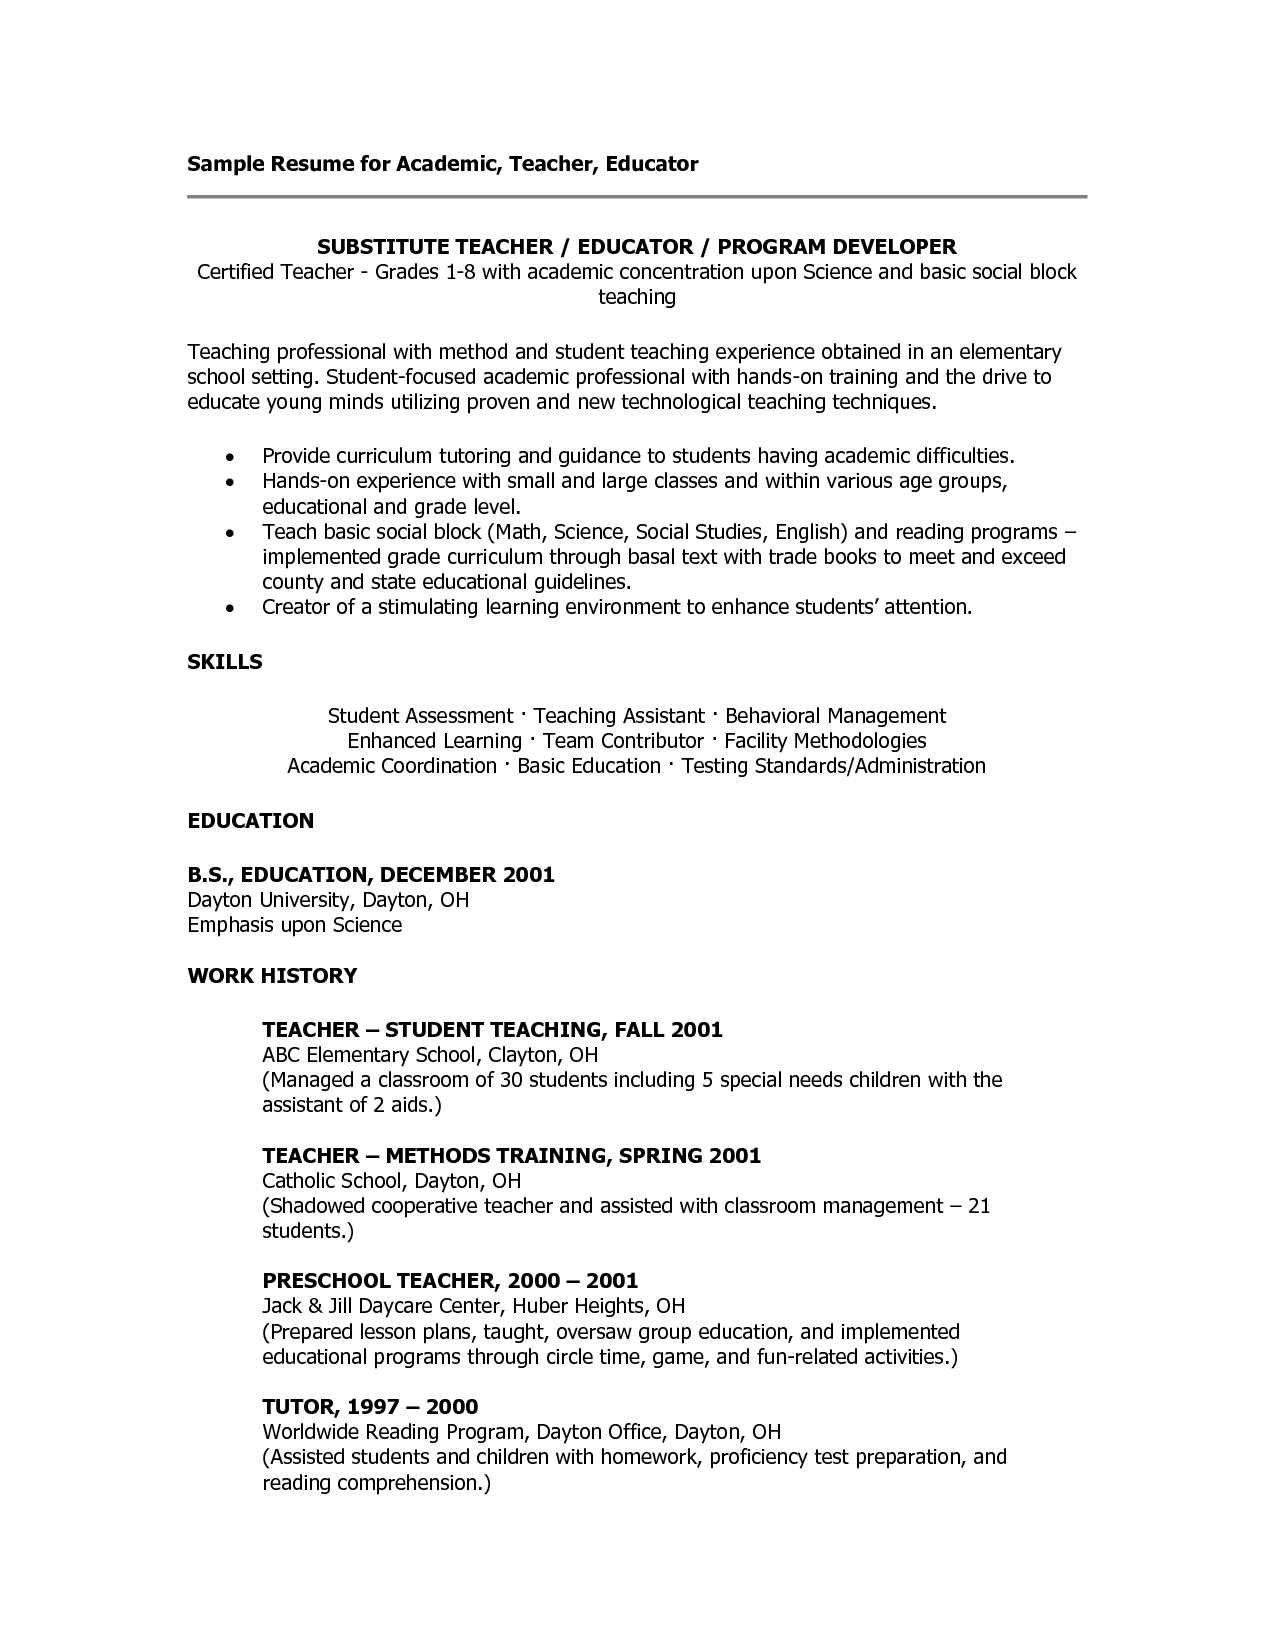 Resume Template Education Sample Teacher Resumes  Substitute Teacher Resume  Fcs